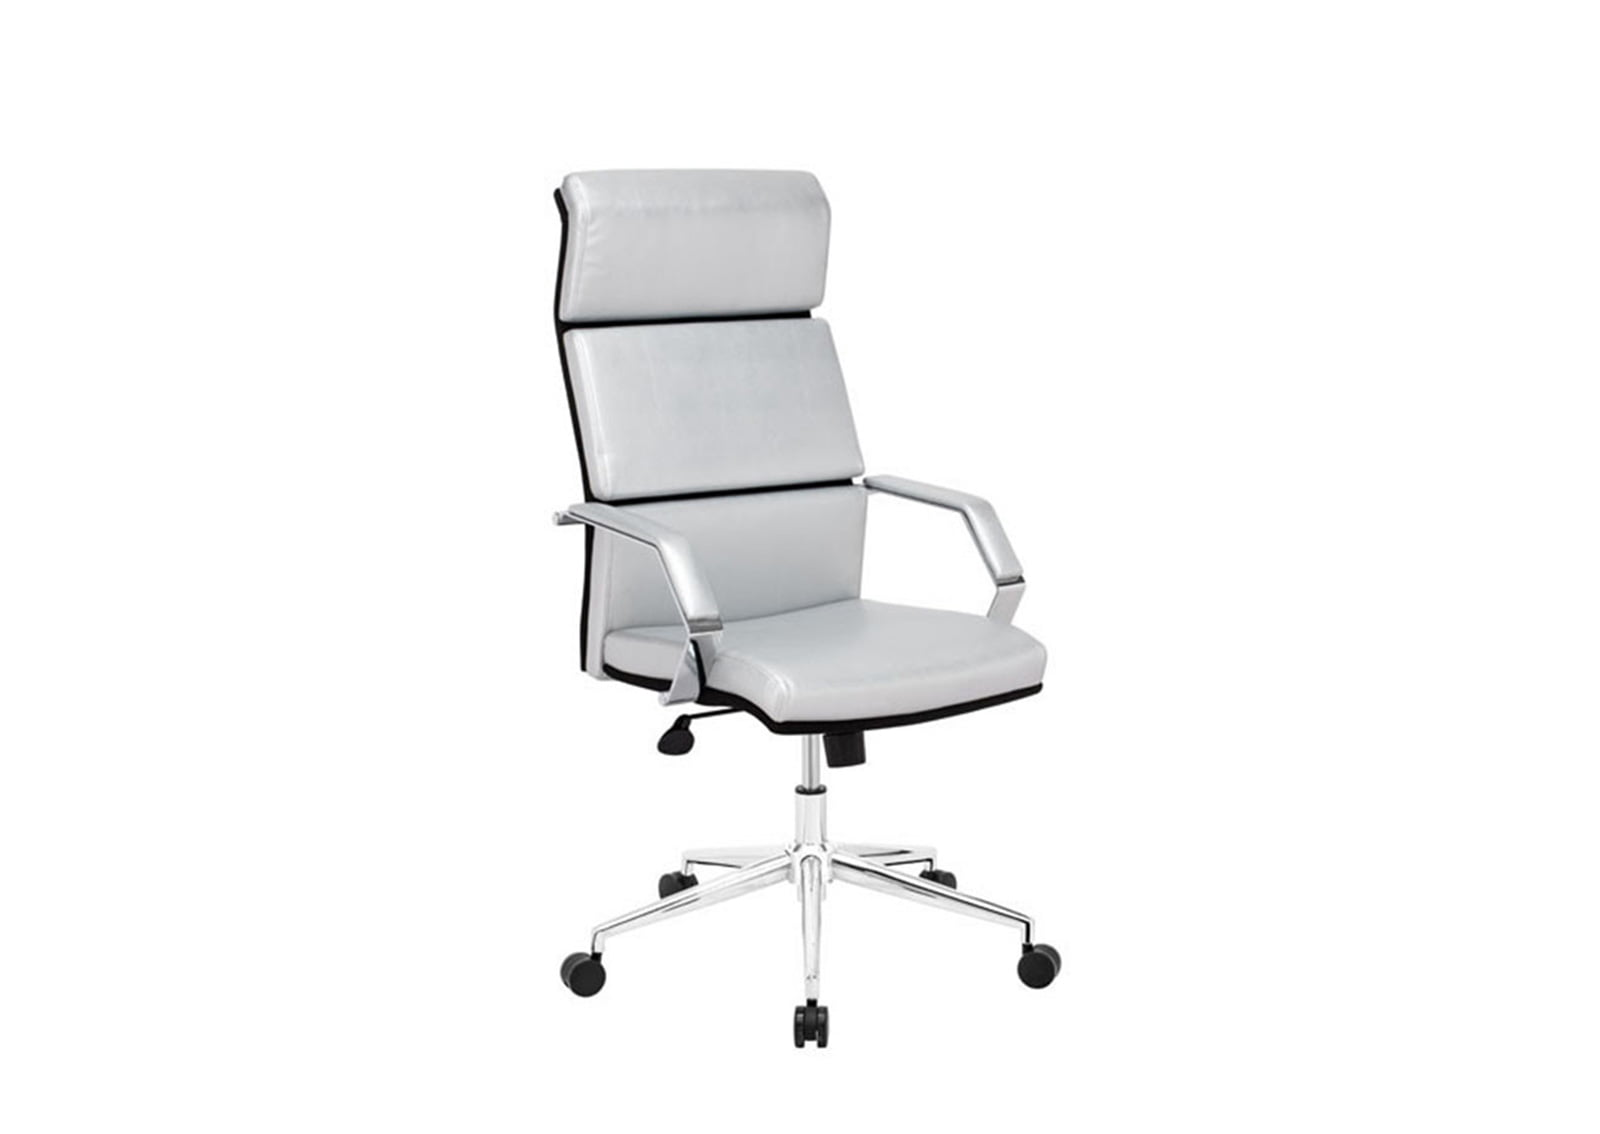 ergonomic chair pros office with lumbar support lider pro silver furnishplus